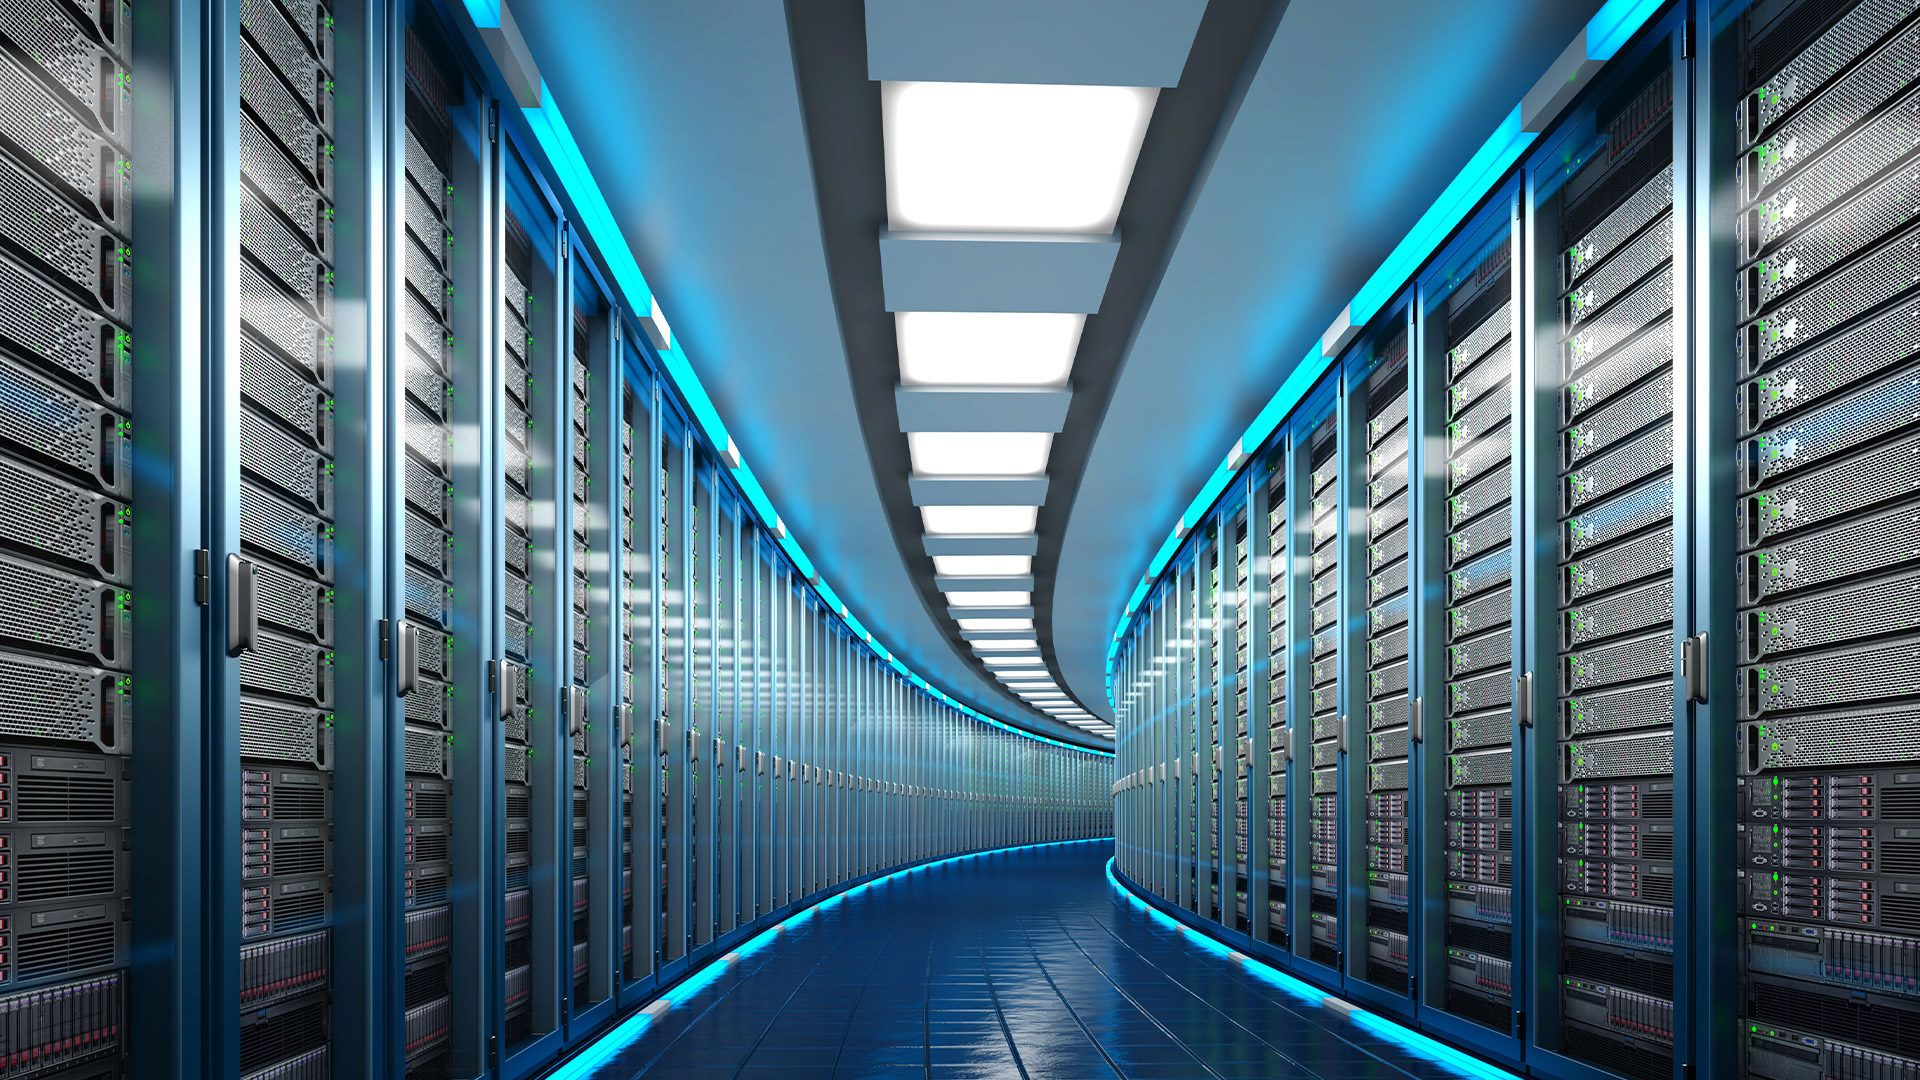 Data Center with a long, curving hallway showing the collaboration between Intel and Splunk.